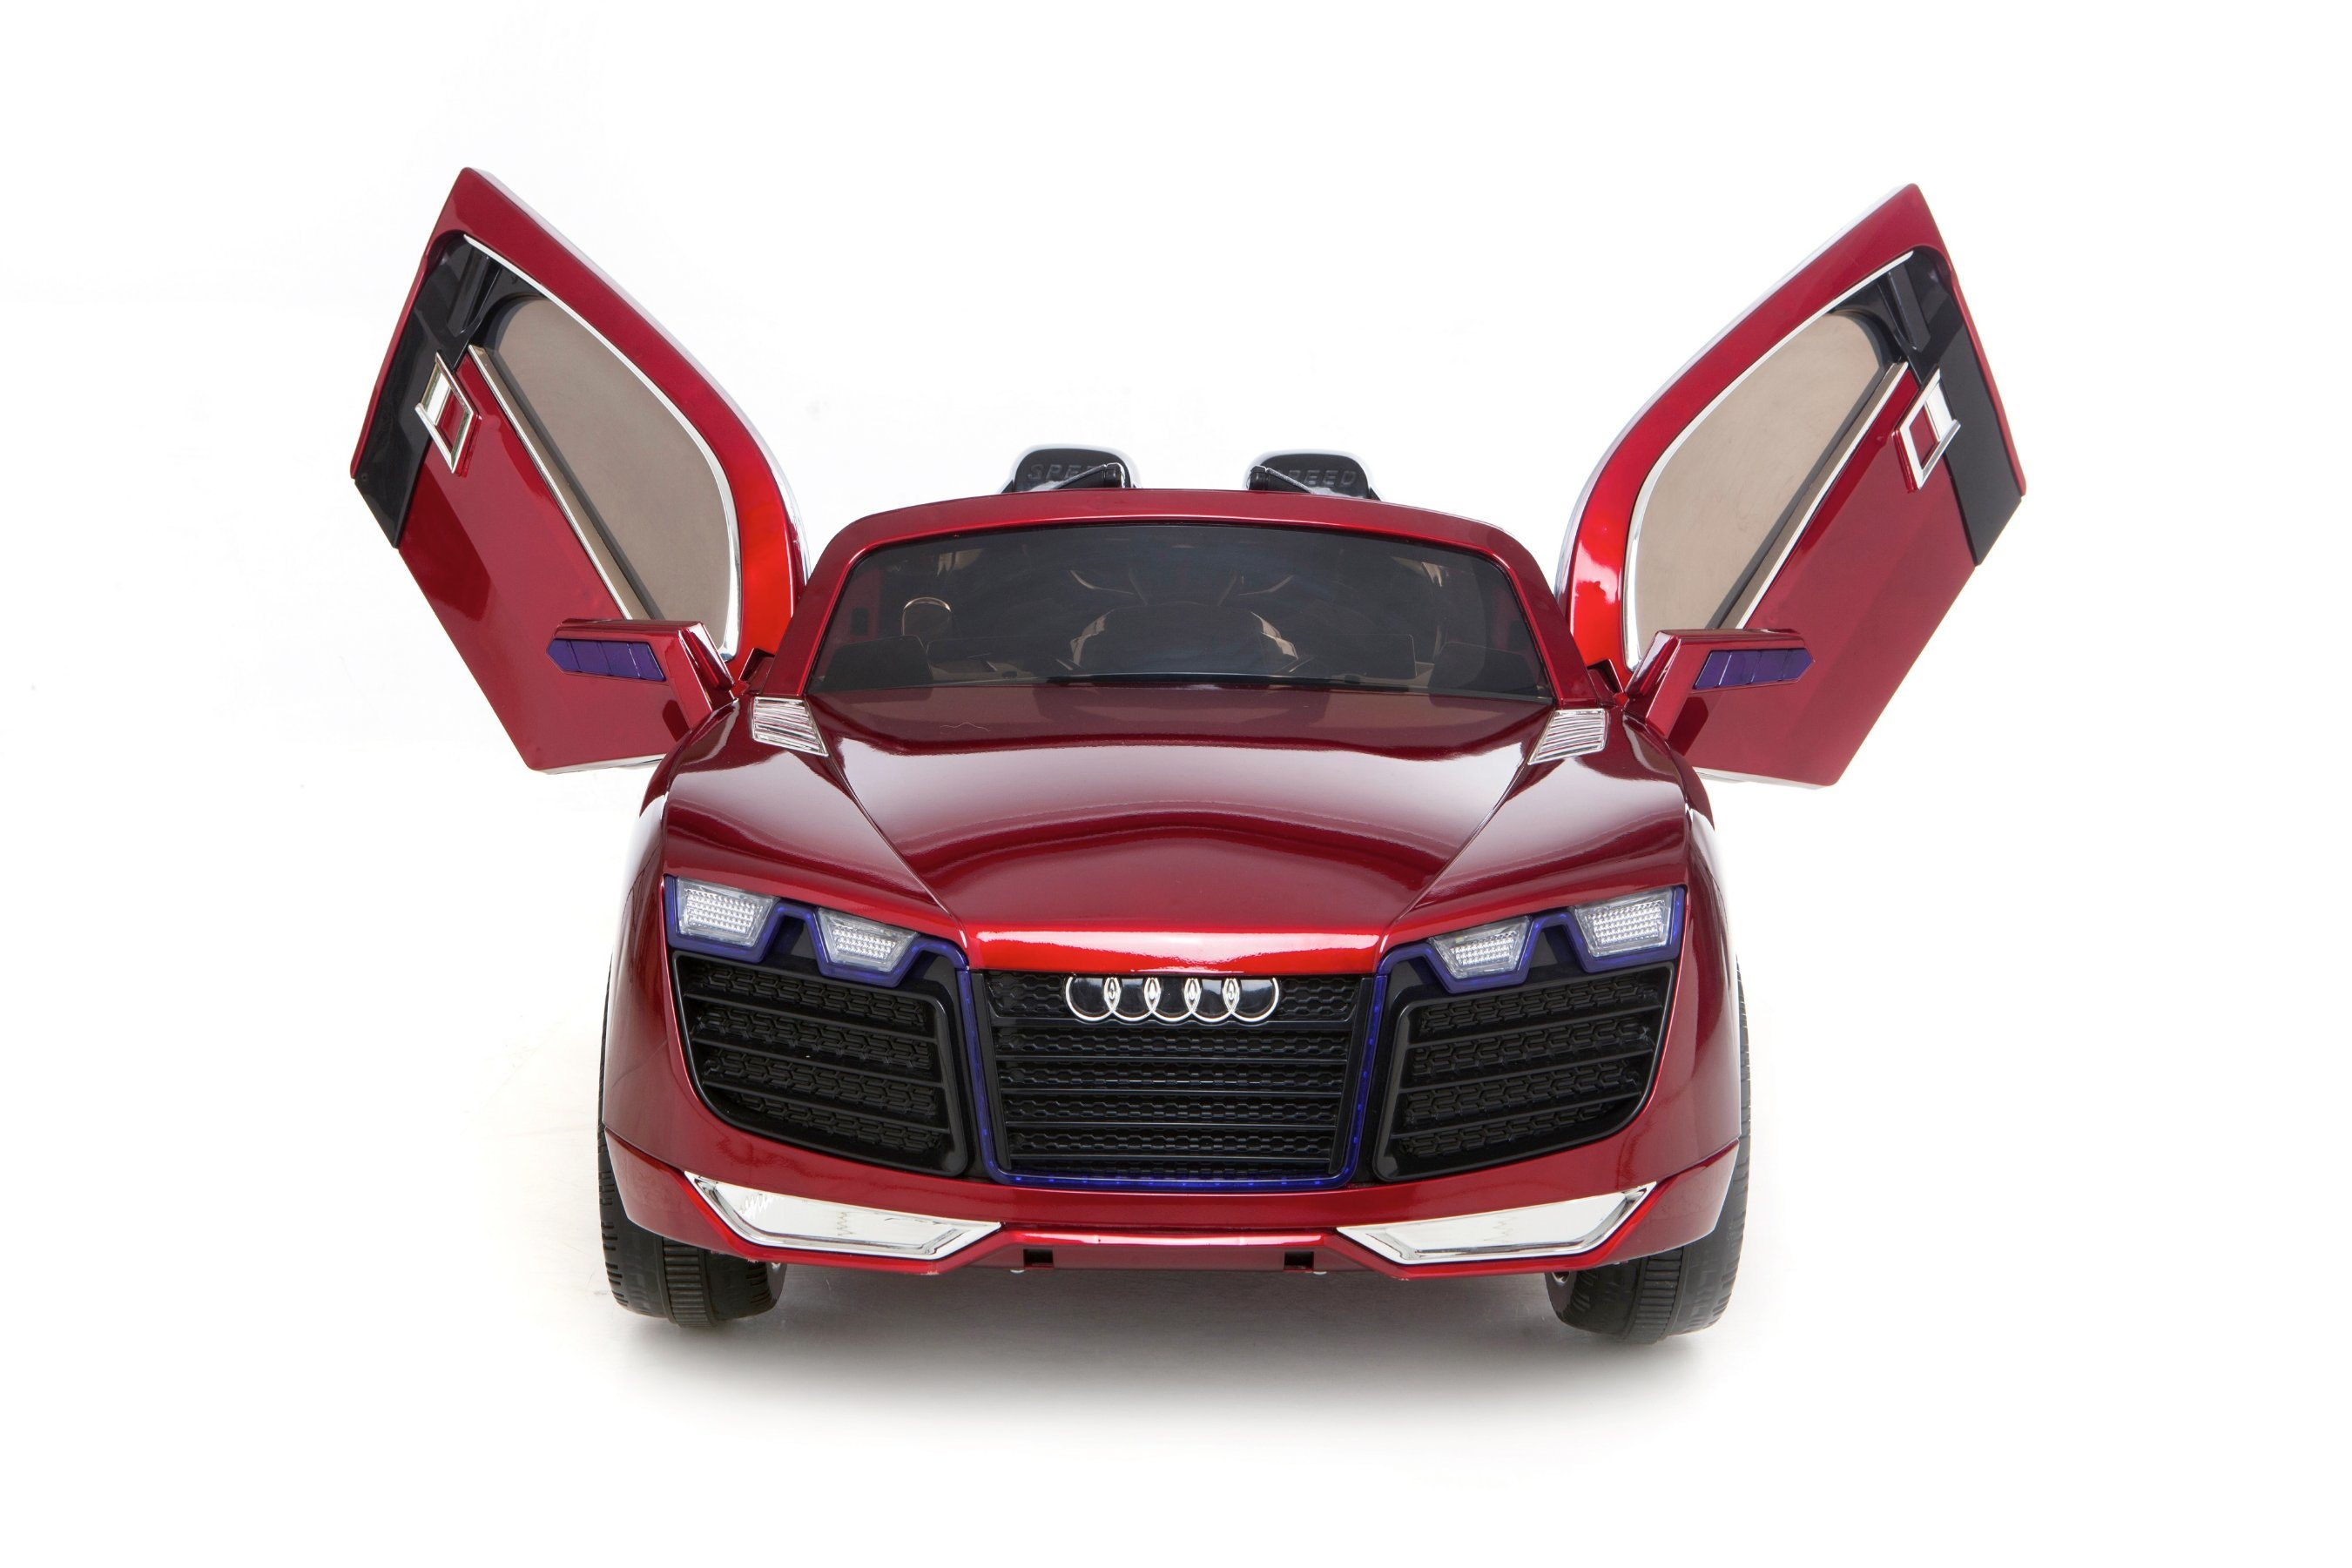 [Hot Item] Kids Electric Ride on Car Audi Car Toy | audi toy car